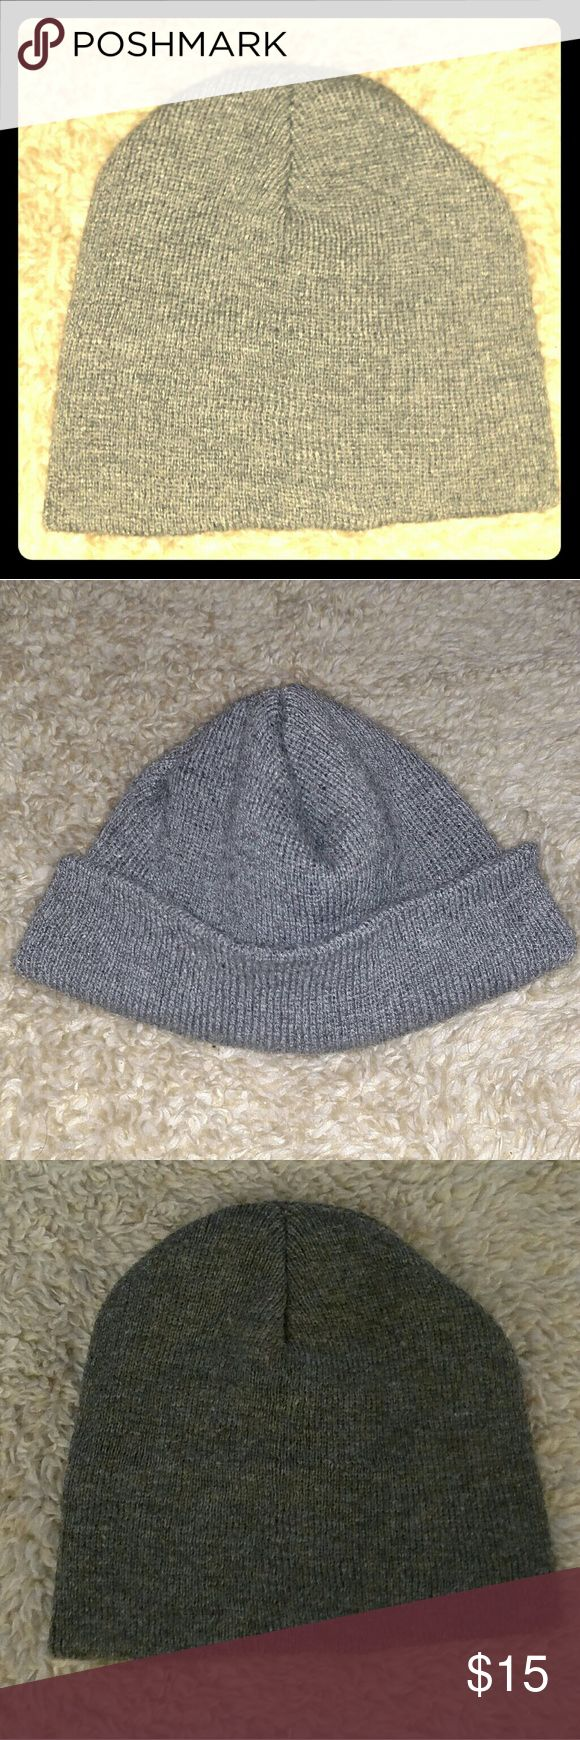 Kids winter hat This hat is one of the most popular beanie hats for your little ones. It is easy to wear and pair with lots of clothes. It is the best way to make your baby more stylish and trendy, and it can be used all year round. Accessories Hats